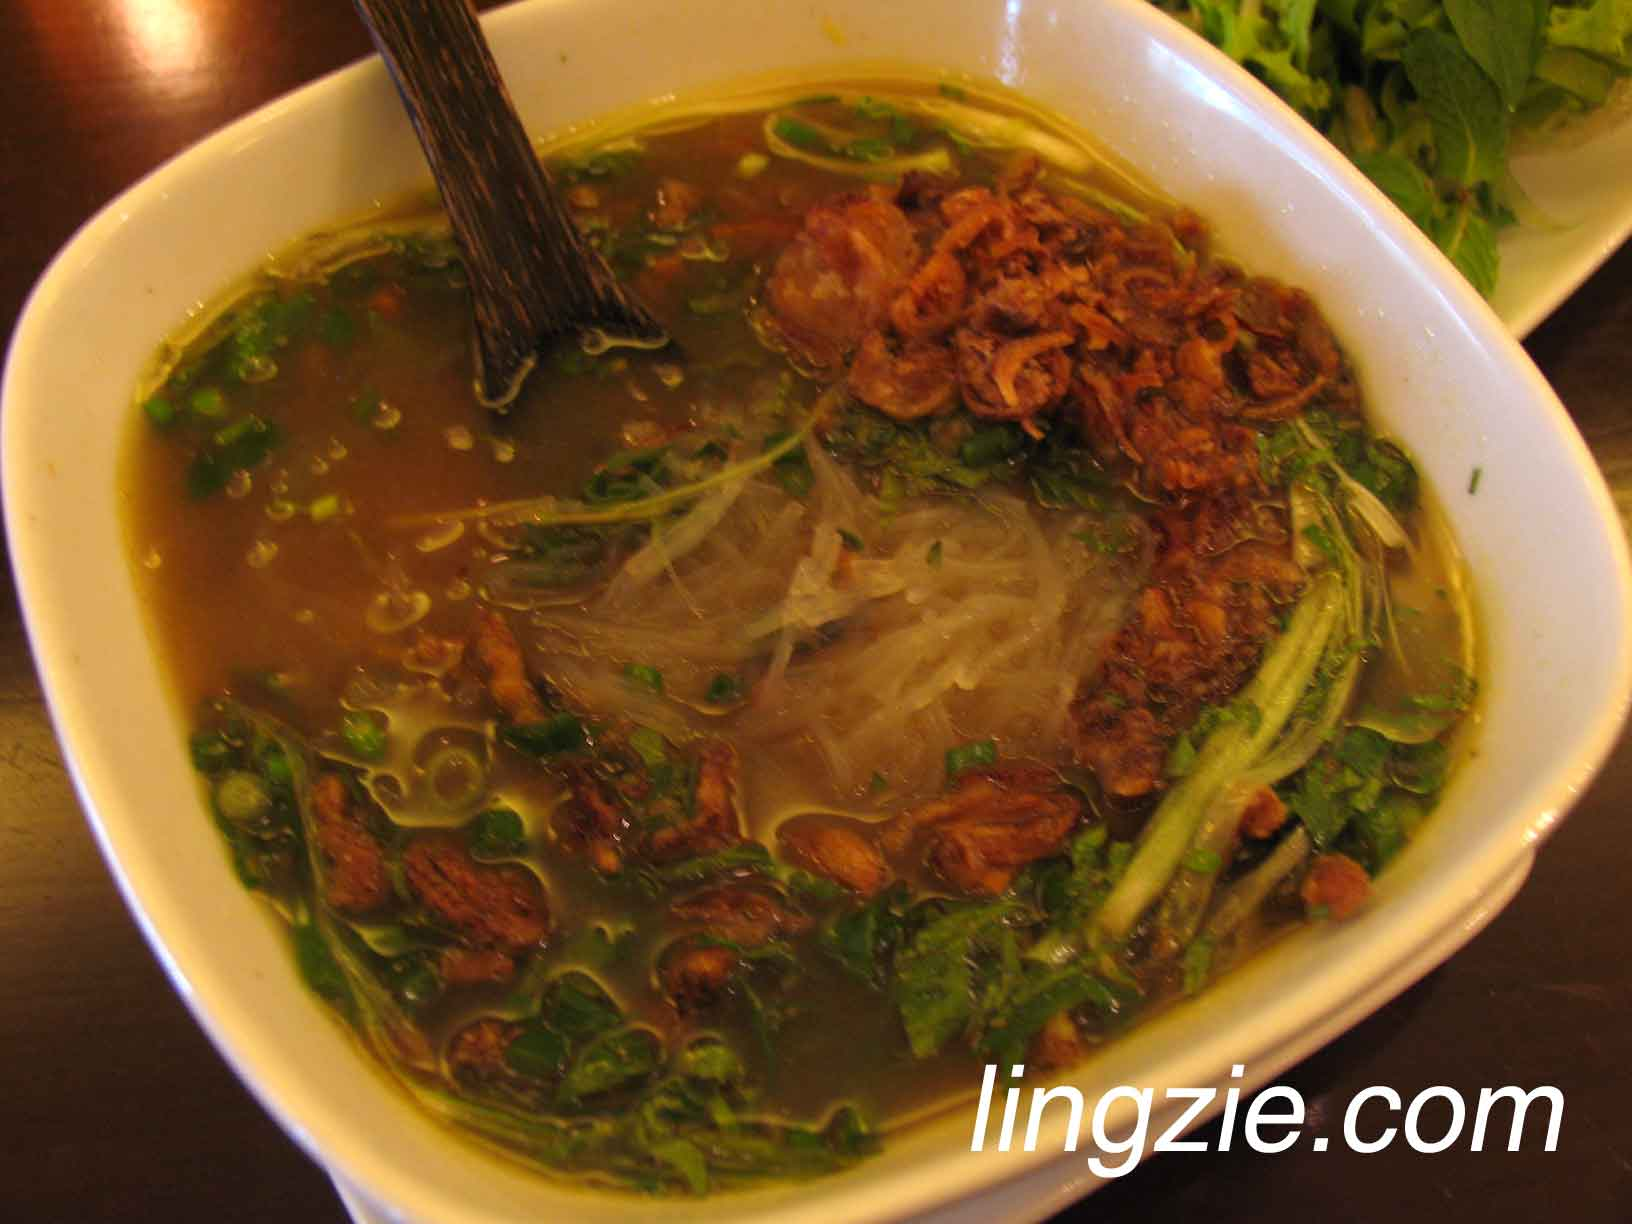 Cruncy Eel Glass Noodle Soup (RM13.80)